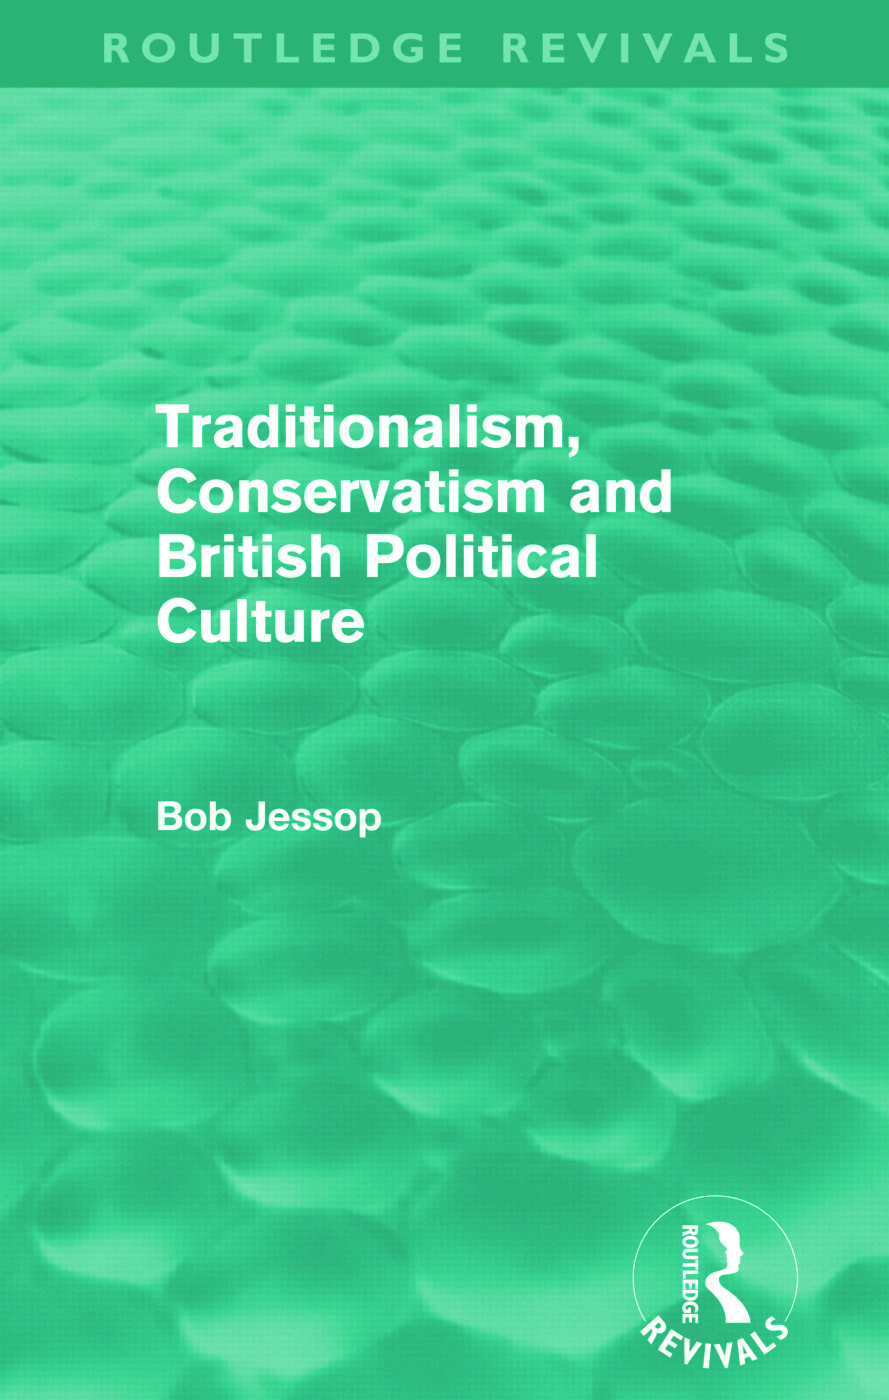 Traditionalism, Conservatism and British Political Culture (Routledge Revivals) (Paperback) book cover